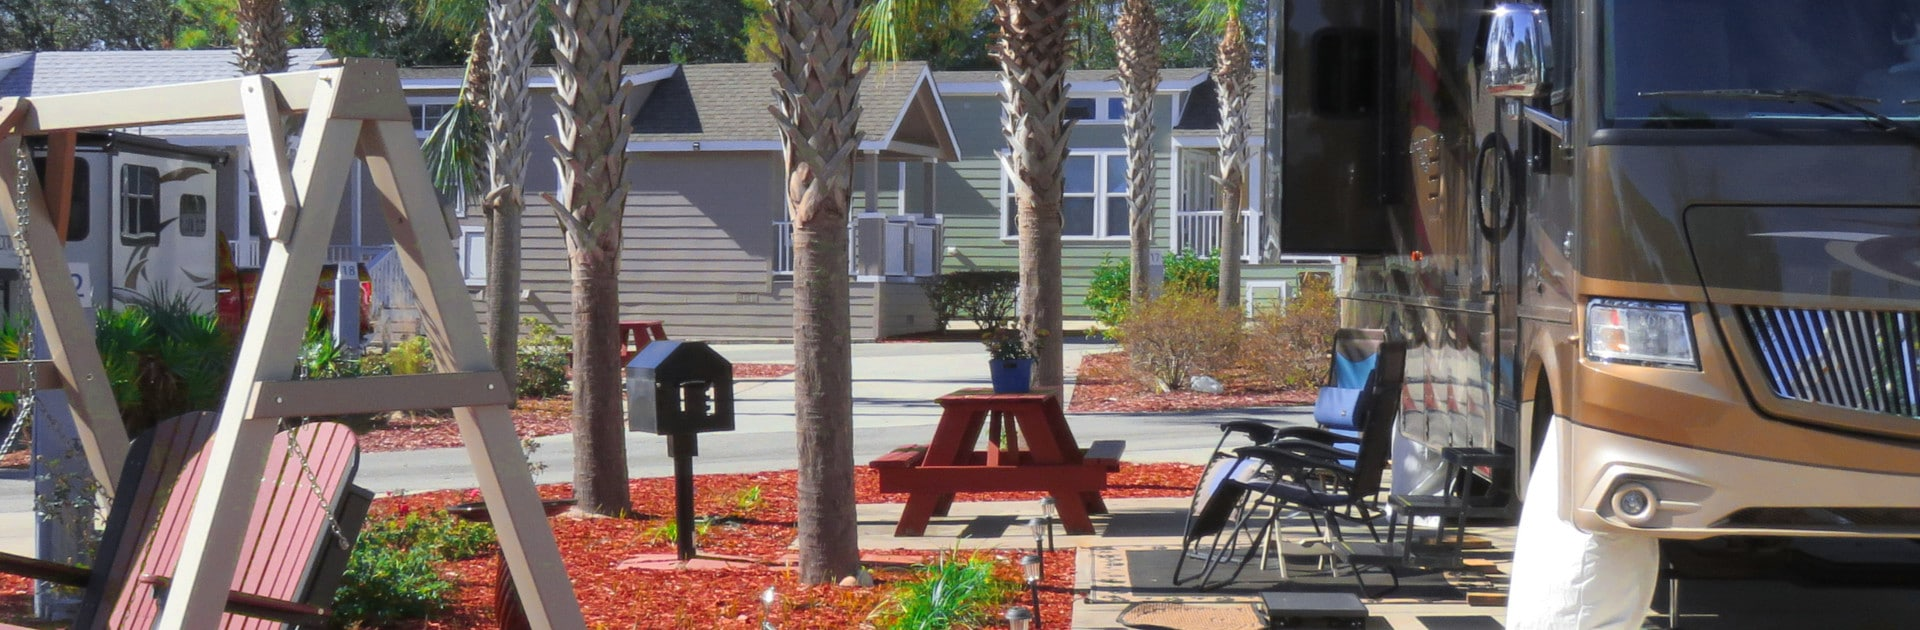 Carrabelle Beach RV Resort View of Cottages and RV Sites